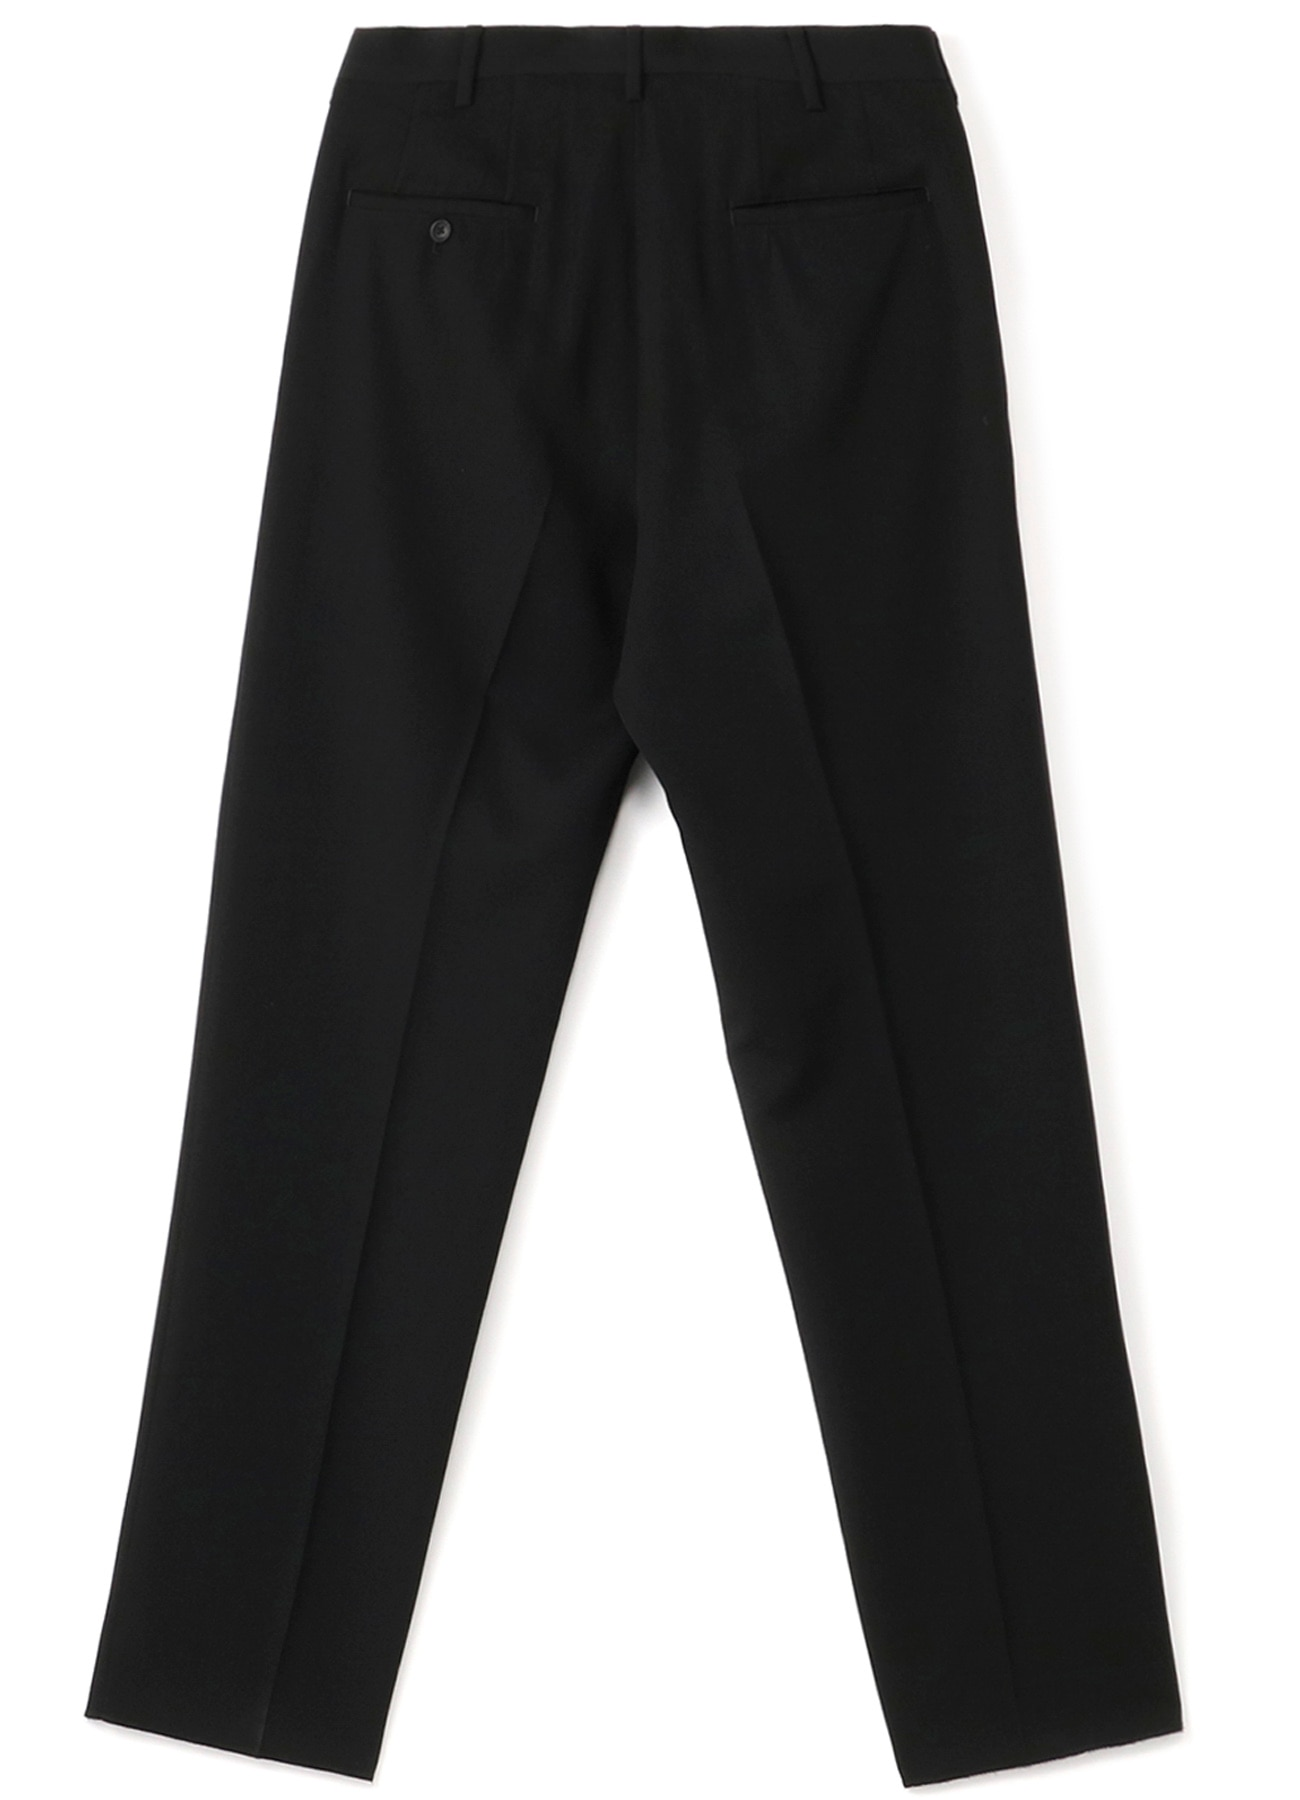 COSTUME D'HOMME wool gabardine no Tacked Pants